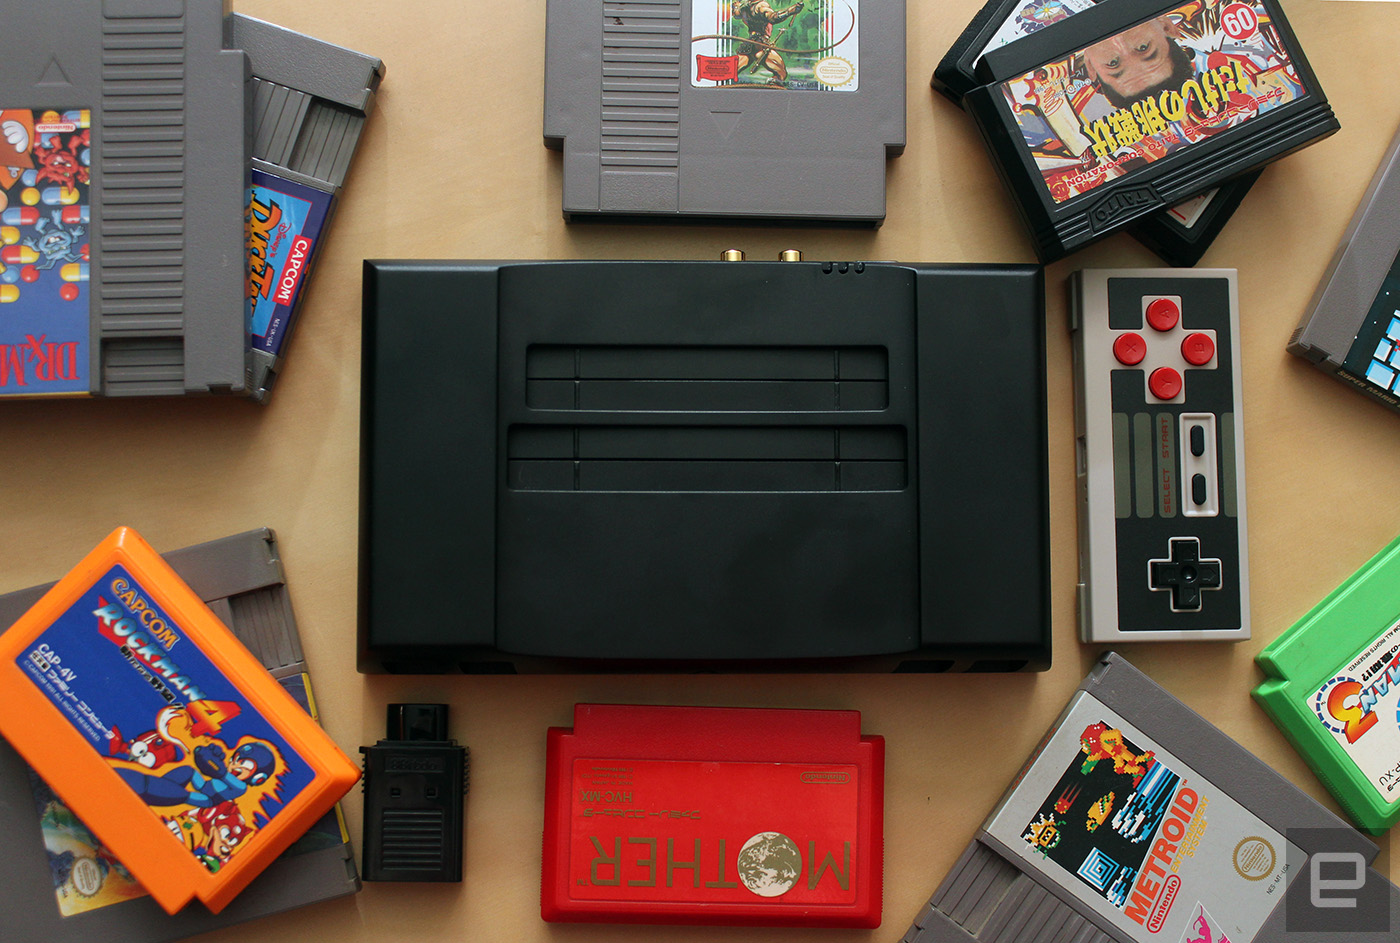 The Analogue Nt mini wants to be the last NES you'll ever buy